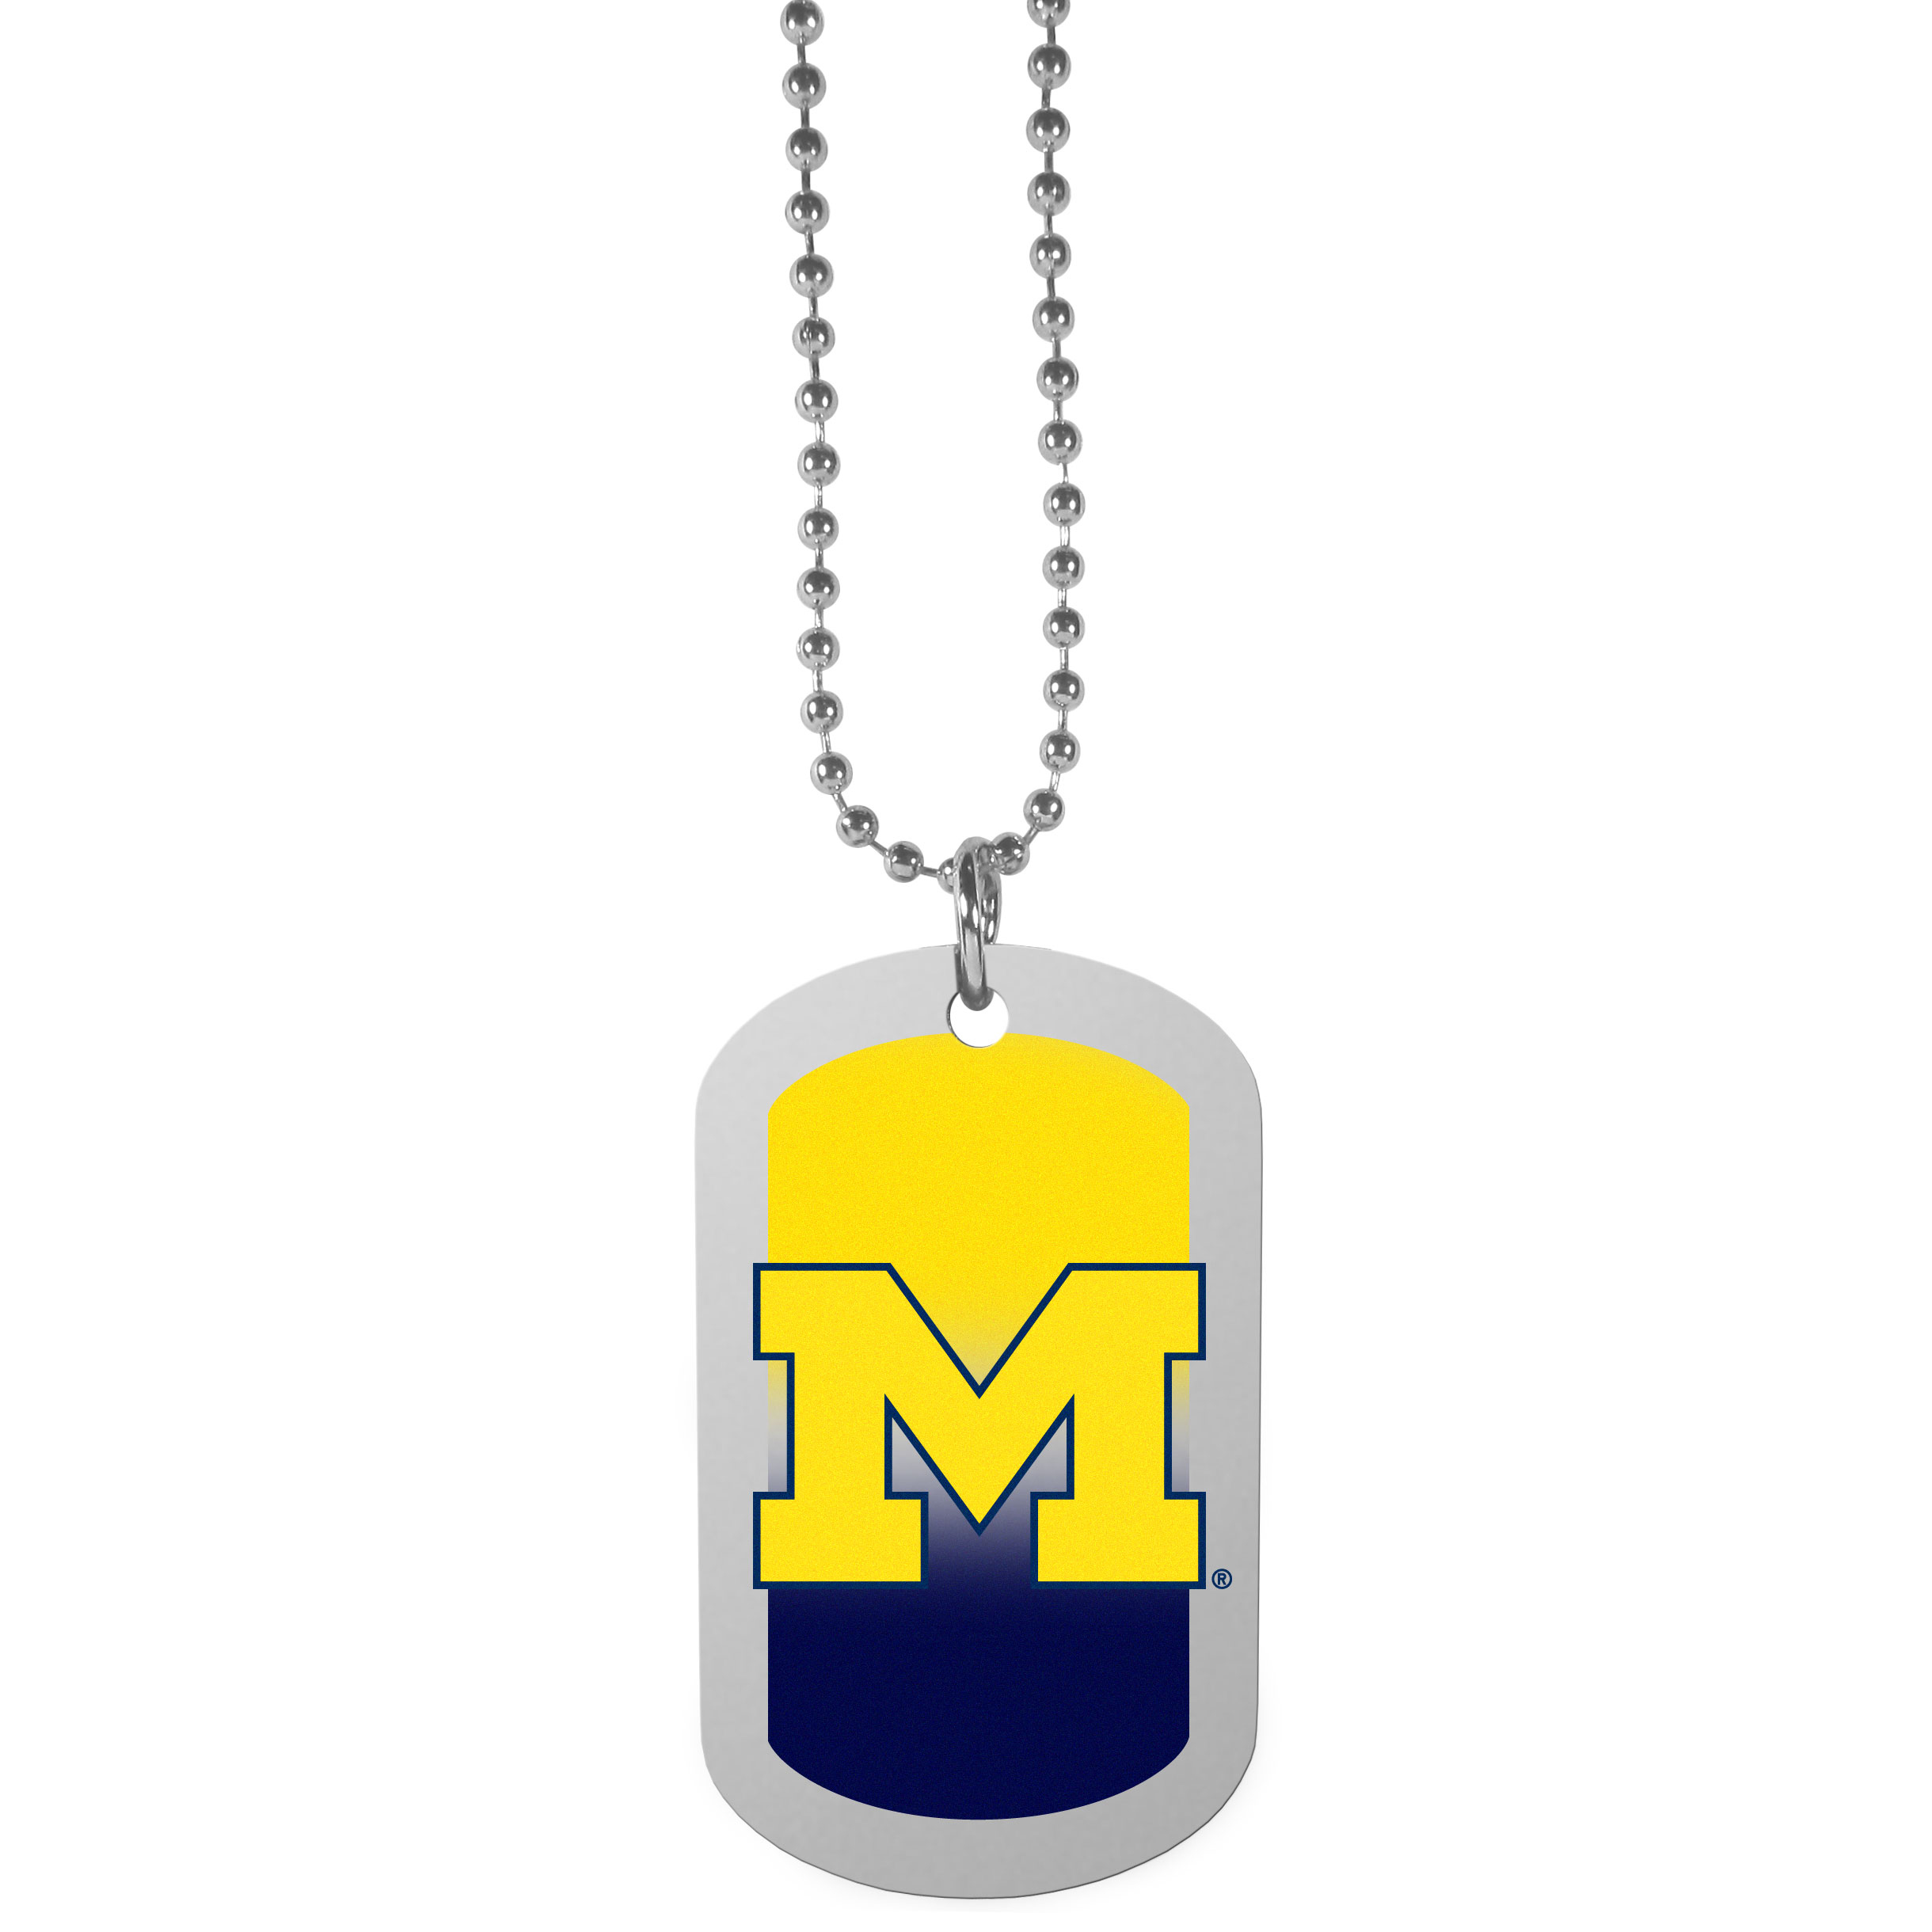 Michigan Wolverines Team Tag Necklace - Dog tag necklaces are a fashion statement that is here to stay. The sporty version of the classic tag features a gradient print in team colors featuring a full color team logo over a high polish tag to create a bold and sporty look. The tag comes on a 26 inch ball chain with a ball and joint clasp. Any Michigan Wolverines would be proud to wear this attractive fashion accessory.